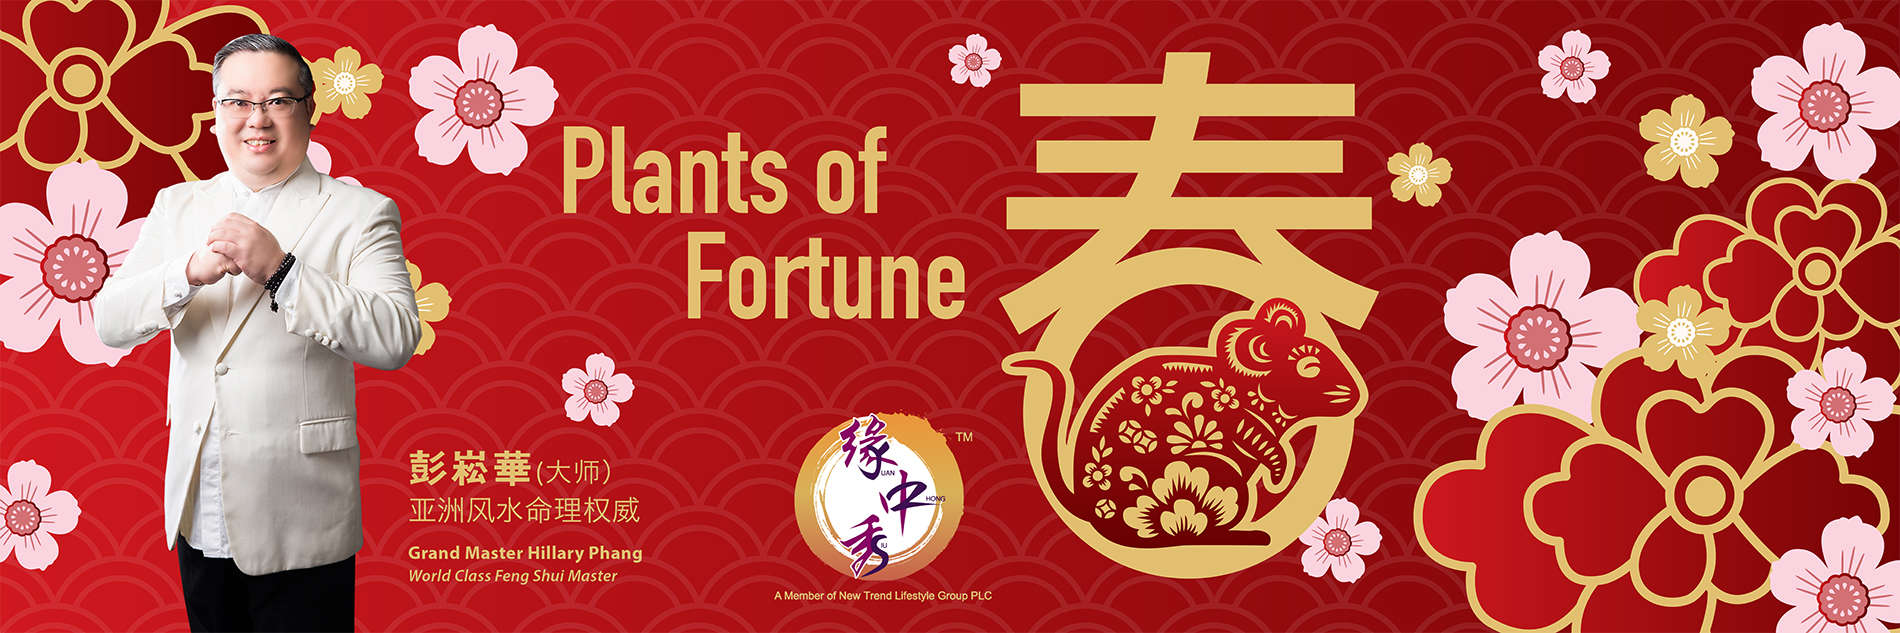 Plants of Fortune Banner